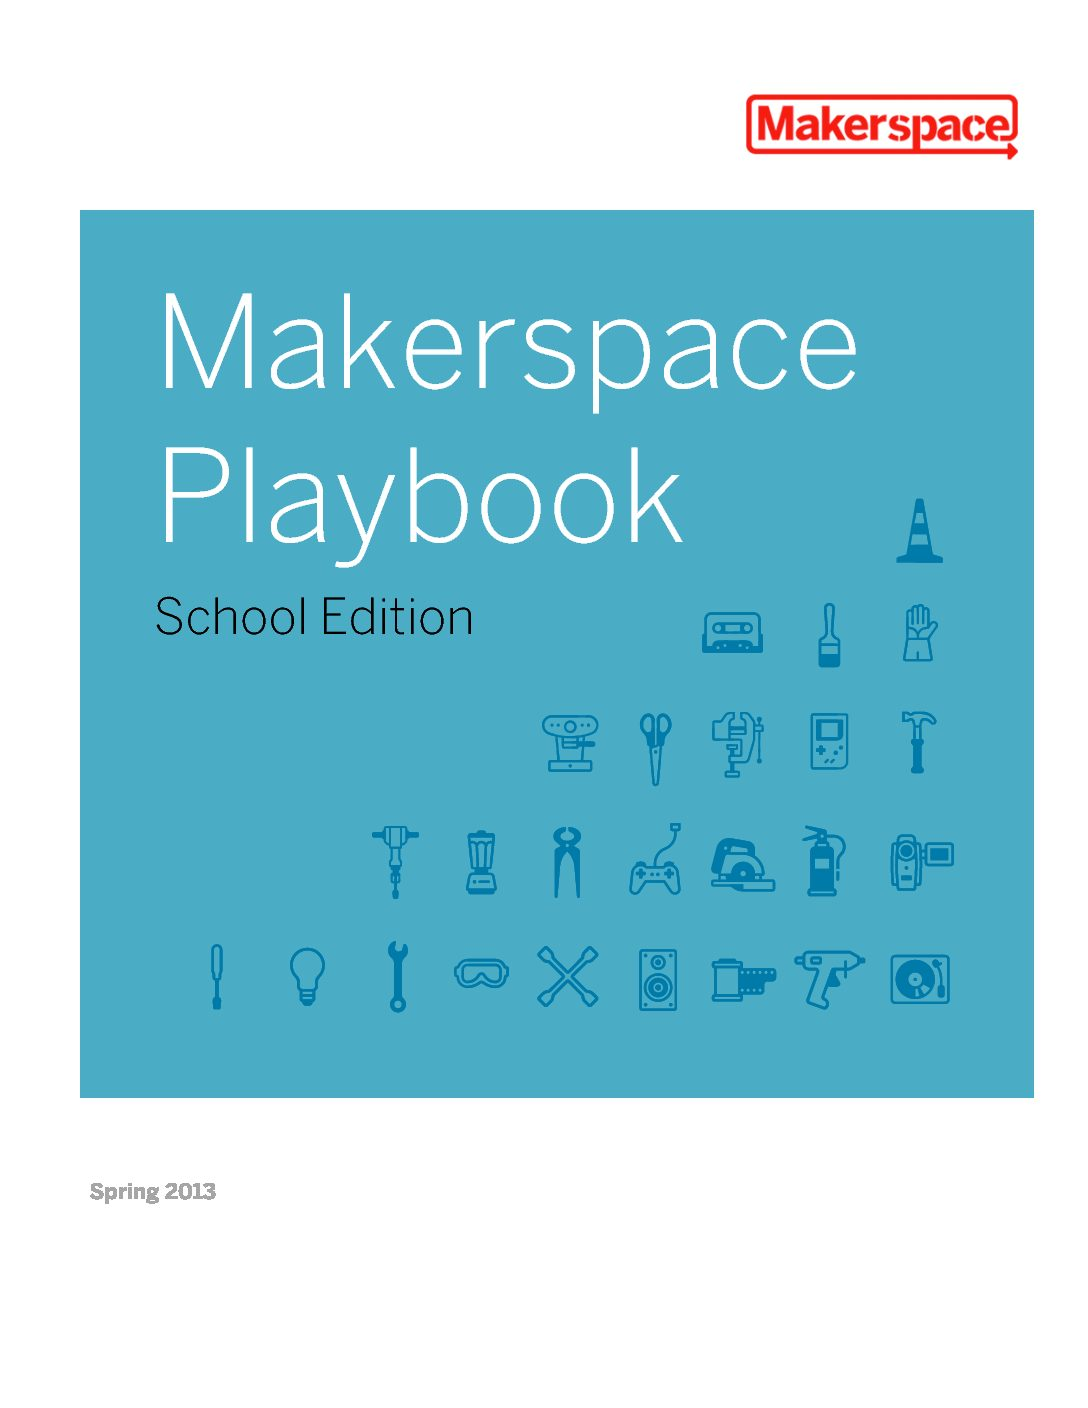 MakerSpace Playbook: School Edition